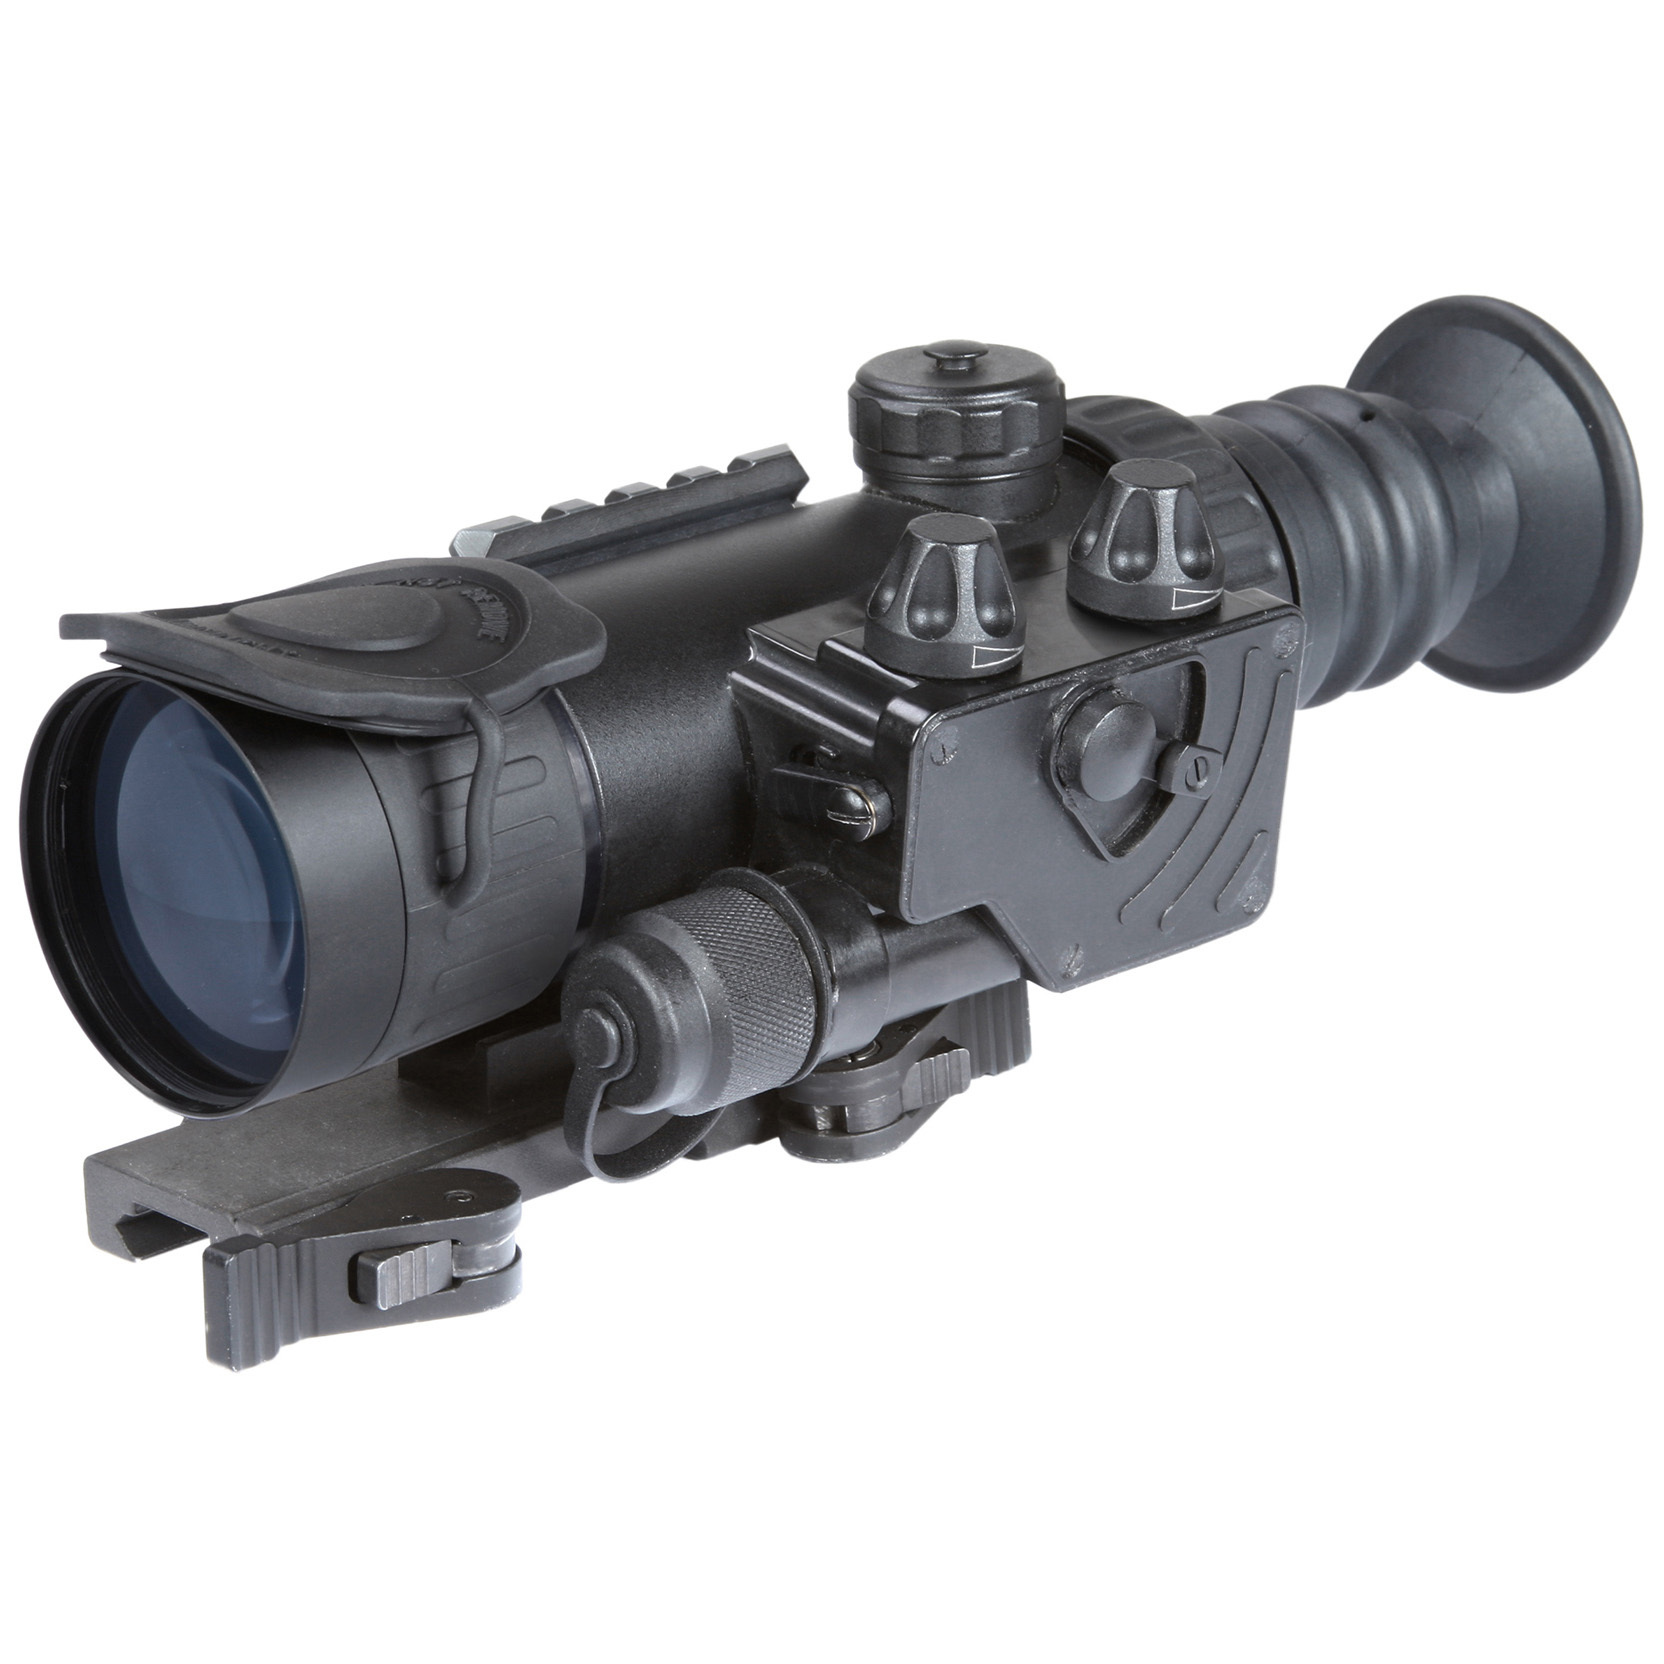 "Armasight Vulcan 2.5-5X Gen 3P MG Night Vision Rifle Scope. Small in size but huge in performance, this Vulcan 2.5-5X Gen 3P MG delivers stunning night imaging without unbalancing your rifle. It weighs just 27 ozs., but still packs a high-resolution image tube, multi-coated all-glass lenses and an internally adjustable fine reticle that makes precise shot placement incredibly easy.Mount it to your rifle's Weaver or Picatinny rail in seconds. No tools. No time wasted. Then let the Vulcan do its thing, pulling your target out of the shadows with a Gen 3P MG image tube and serving it up in stunning clarity. Ideal for predator hunters, tactical marksmen and security personnel. Features:Wide array of IIT configurations 5X magnification with included magnifier Shockproof, all-glass IR transmission multi-coated optics Bright light cut-off Illuminated reticle with brightness adjustment Variable gain control Wireless remote control Detachable long-range infrared illuminator Waterproof design Low battery indicator Quick-release mount Mounts to standard Weaver rails Runs on 1 CR123A battery (included) or 1 AA battery (not included) Includes lens cap, carrying case, battery adapter, and lens tissue Measures 3.8 x 2.8 x 9.4""l. Weighs 1.7 lbs. Specifications:IIT generation: Gen 3 High Performance ITT pinnacle manual gain Resolution: 64-72 lp / mm Exit pupil diameter: 7mm Eye relief: 45mm Windage and elevation adjustment: 1/2"" MOA Lens system: F1.35, F60 mm 16 degrees F.O.V. Diopter adjustment: -4 to +4 Controls: direct Battery life: 50 hours (CR123A) or 46 hours (AA) Operating temperature: -40 degrees to 122 degrees F. Storage temperature: -50 degrees to 158 degrees F. - $4,609.99"